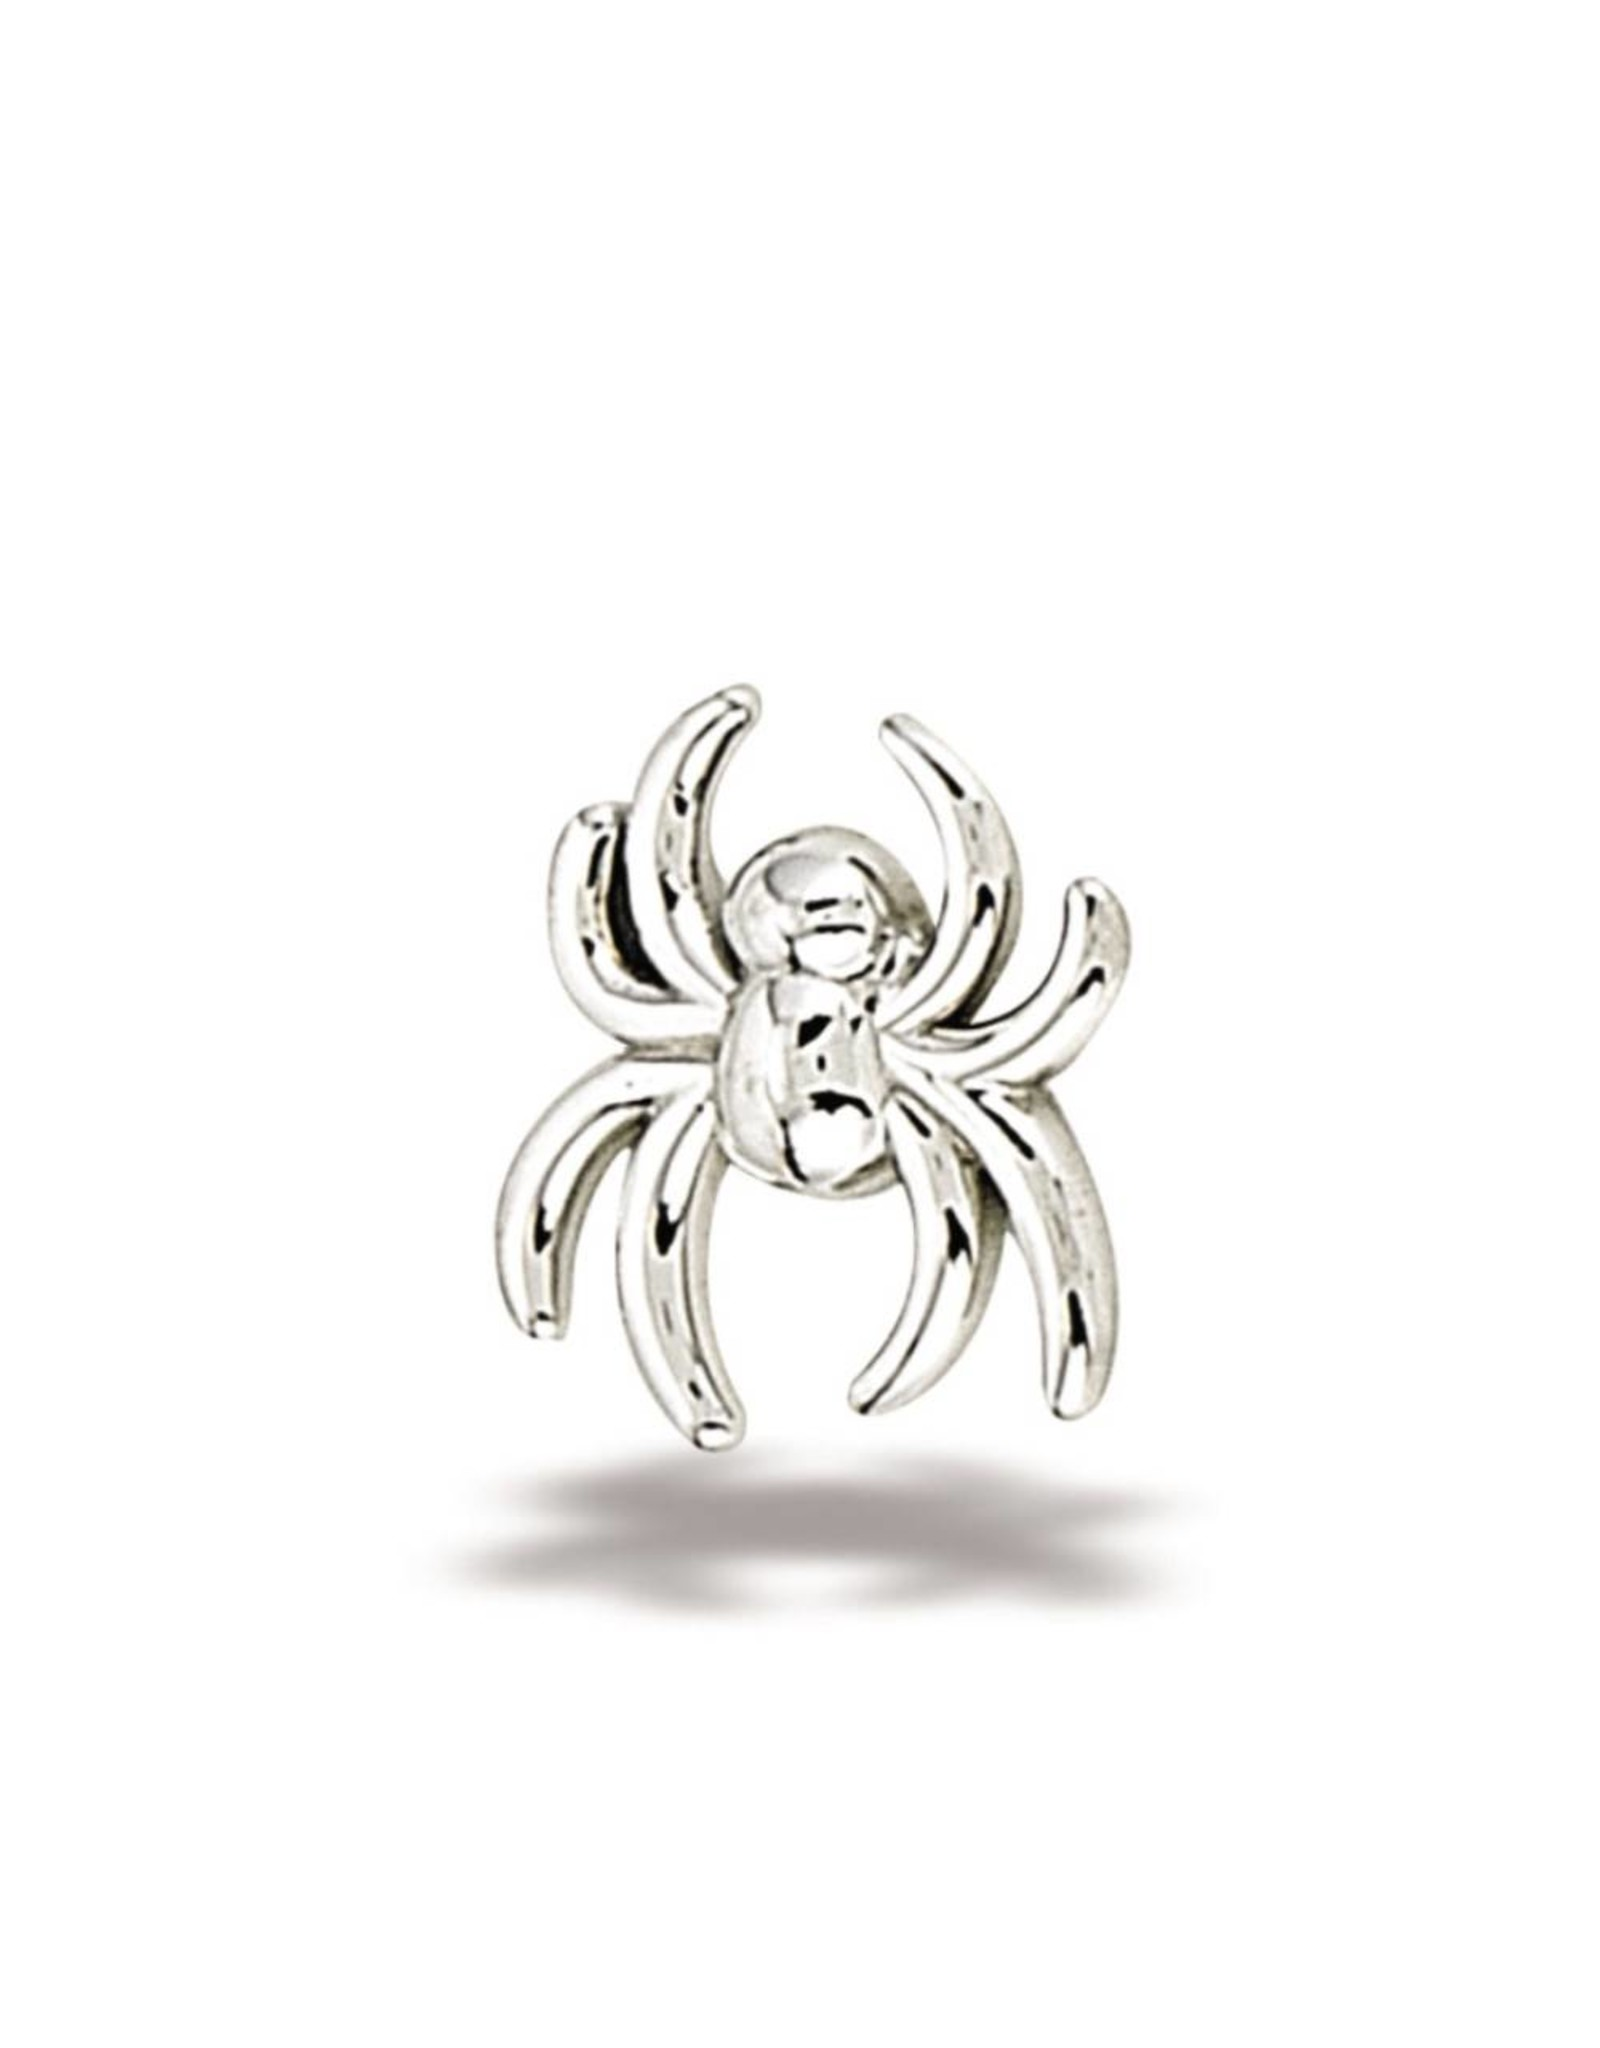 14k WG Spider (6x5.5mm) Threadless End